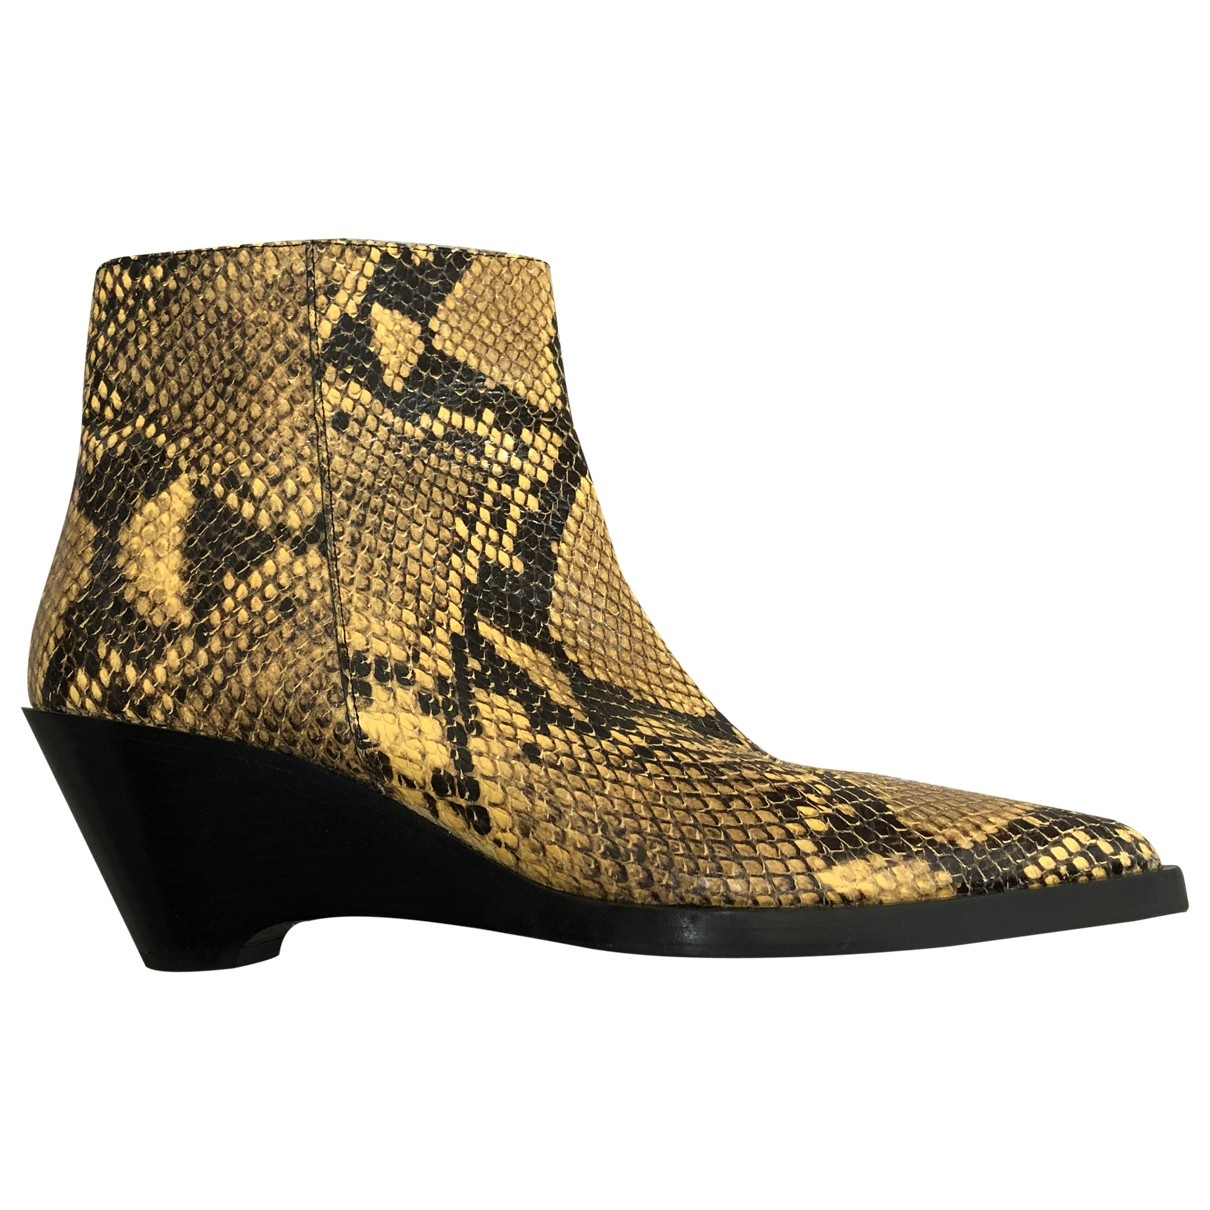 Acne Studios \N Yellow Python Ankle boots for Women 38 EU